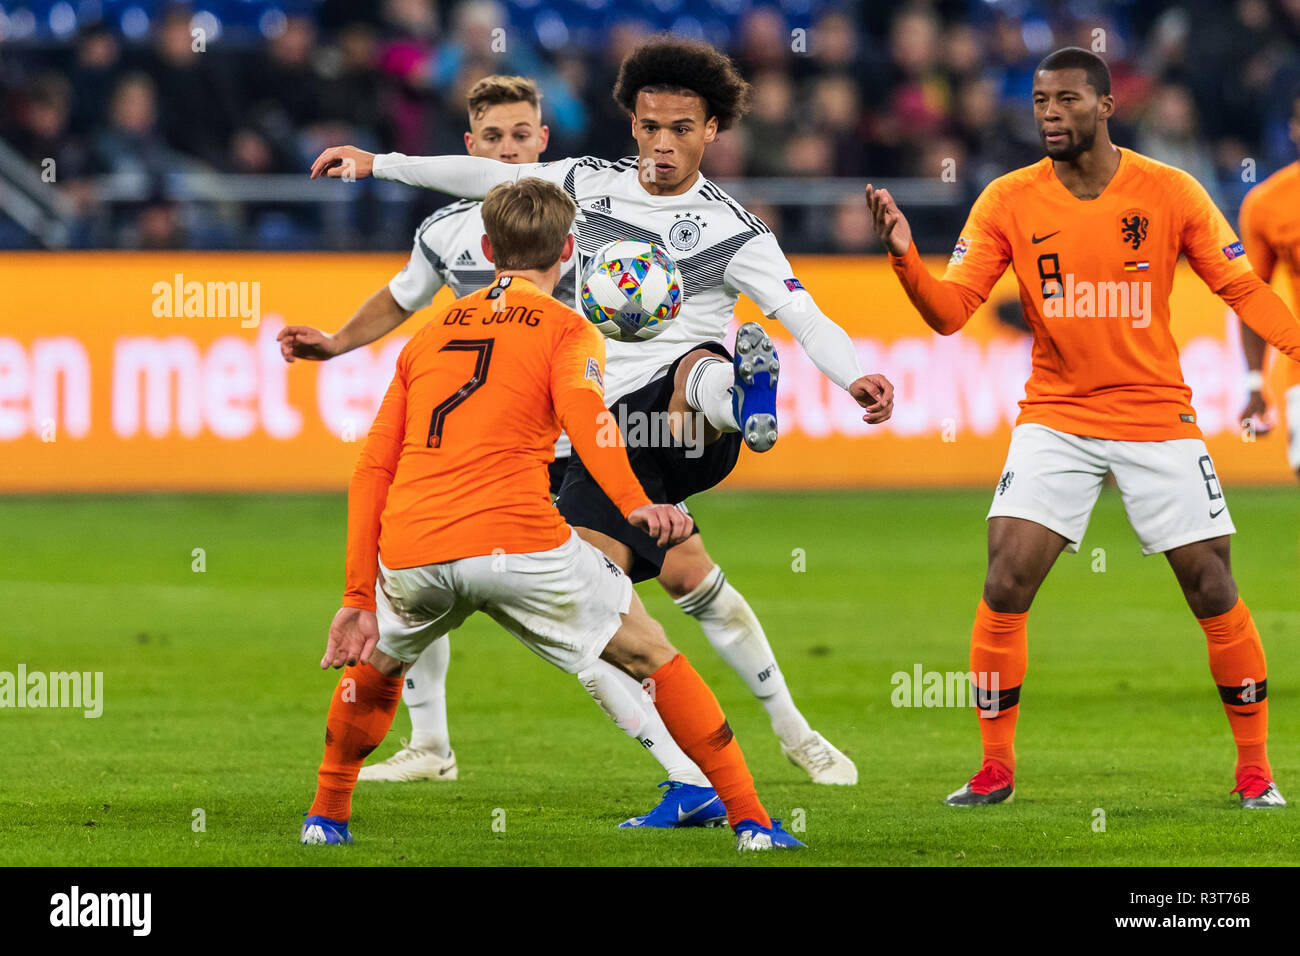 Gelsenkirchen, Germany 18 November 2018 UEFA Nations League Germany - The Netherlands    L+R Frenkie de Jong (Netherlands) and Leroy Sane of Germany a - Stock Image